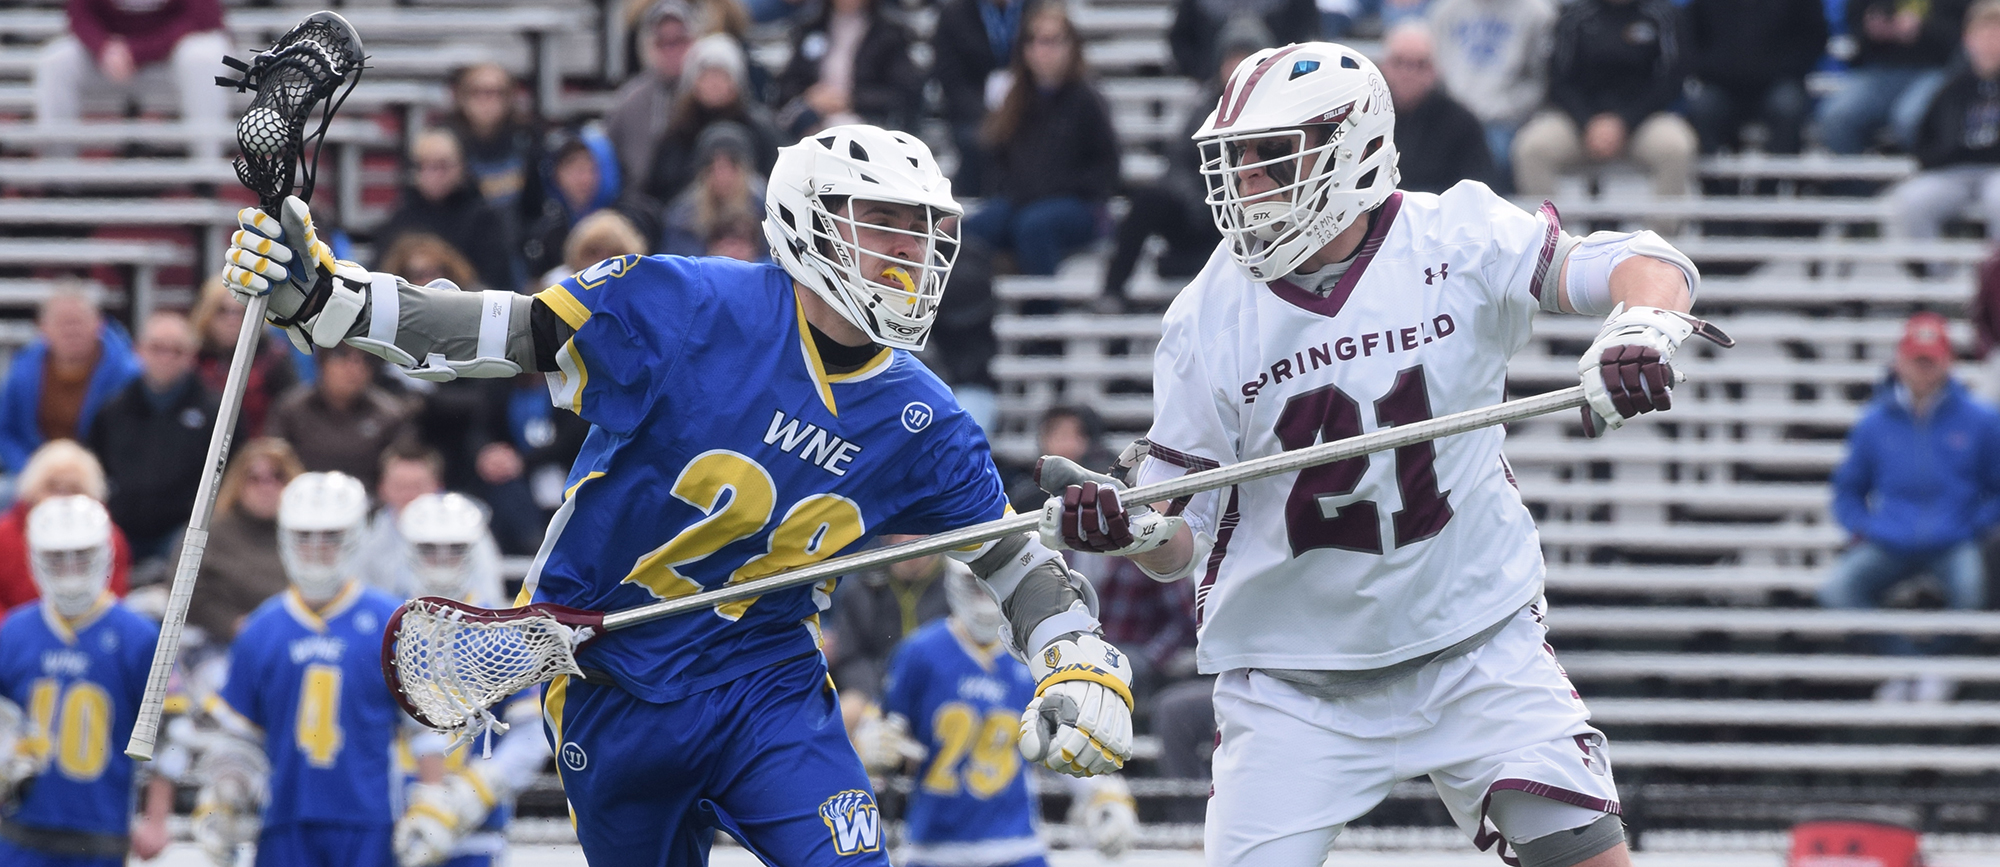 Springfield limited Western New England to one goal over the second and third quarters as the Golden Bears fell to the Pride 11-7 on Saturday. (Photo by Rachael Margossian)